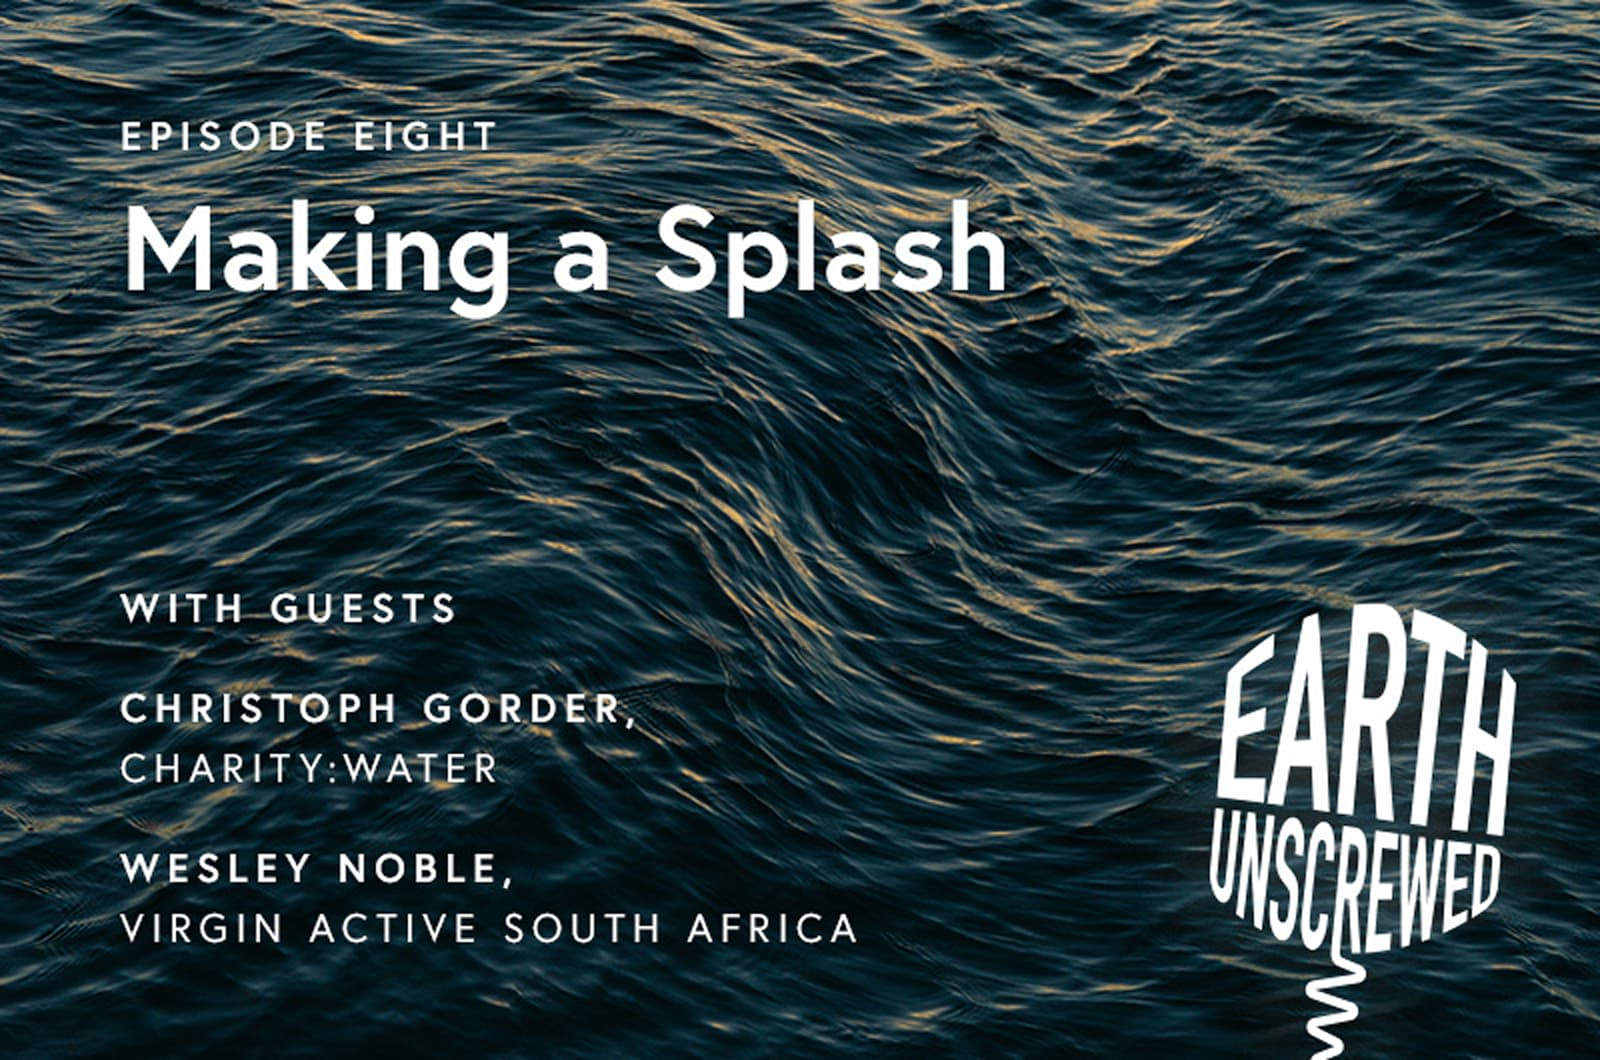 White text over an image of the sea, that reads 'Episode eight. Making a splash with guests Christoph Gorder, Charity Water, Wesley Noble, Virgin Active South Africa